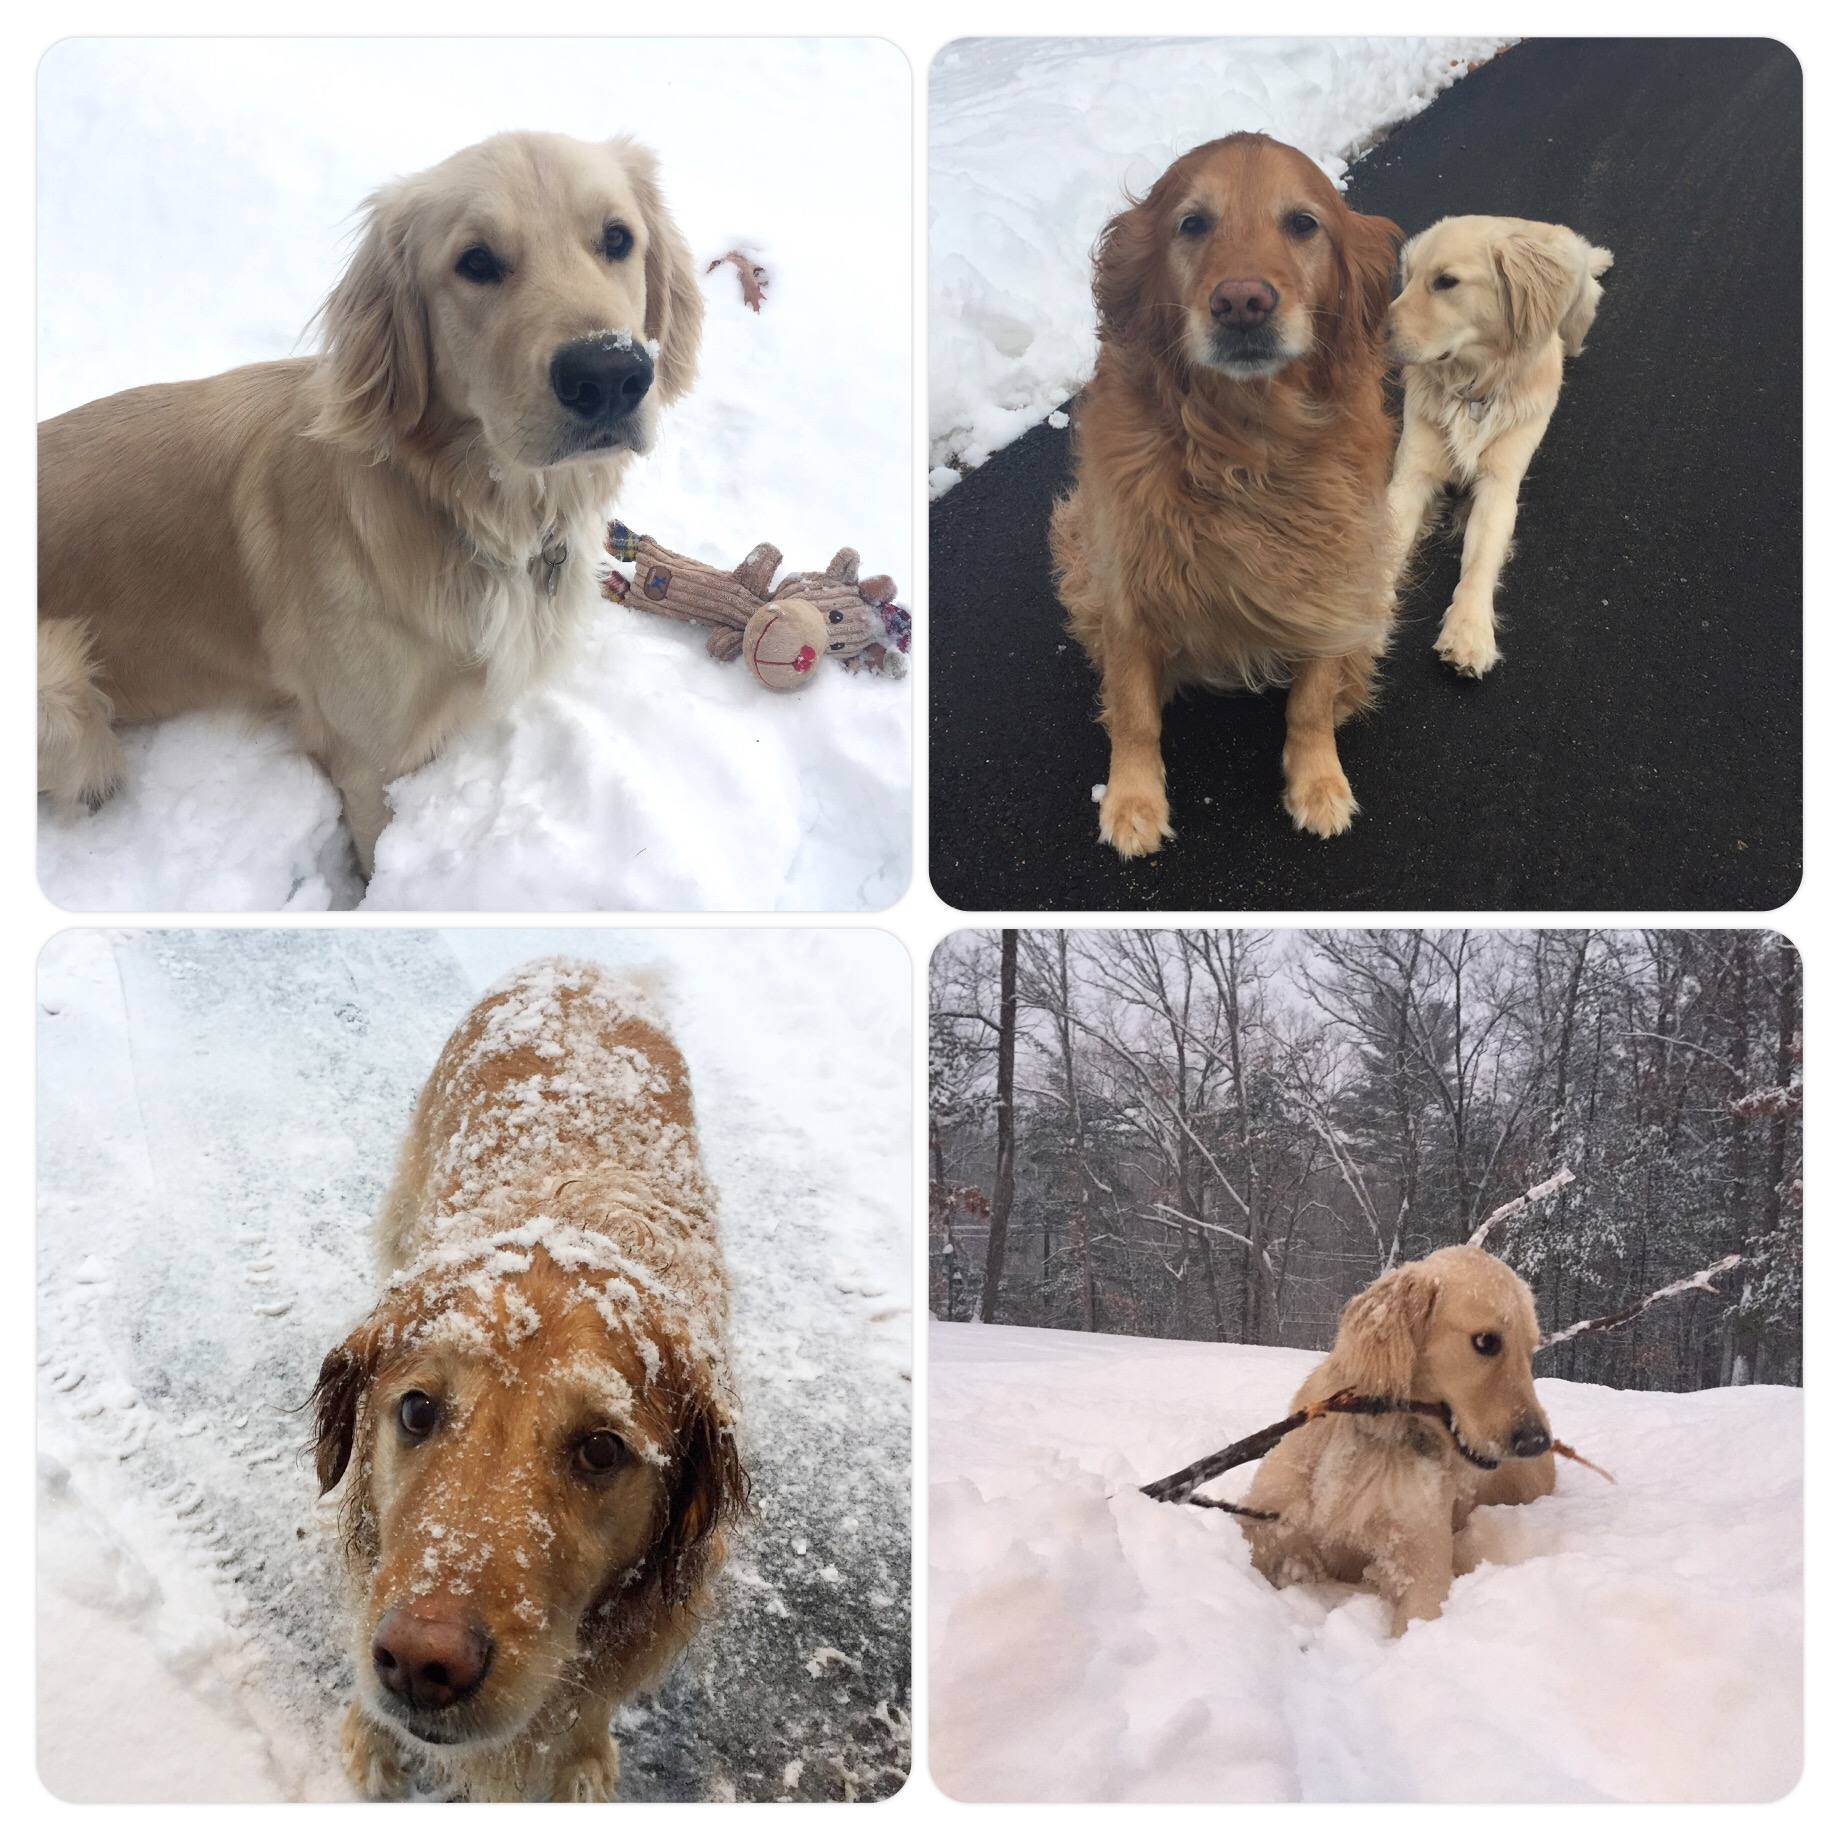 Dogs loving the snow, Scout more than Lucy. :) She tolerates it.